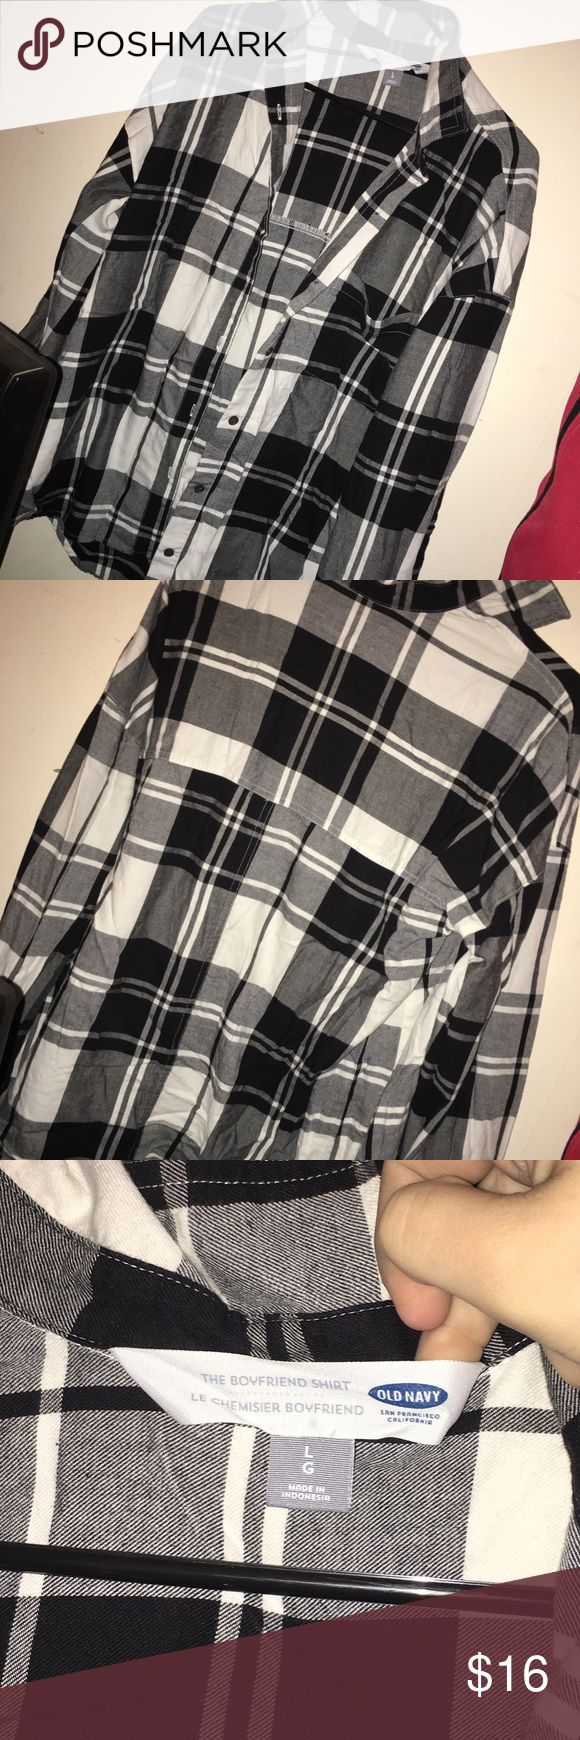 Black and white Plaid shirt (new) Brand new, I begged my mom to get this for me and literally never wore it lol. It's a size large and is from old Navy. • -Any questions,ask, thank you! -Wanna save money on shipping and get a discount on more items? Create a bundle with 2+ items and I'll offer a discount price! Contact me for more details -Make sure to go look at my closet&follow me! I have tons of clothes(of all ages & sizes literally) , makeup, electronics, art prints, art supplies, games…